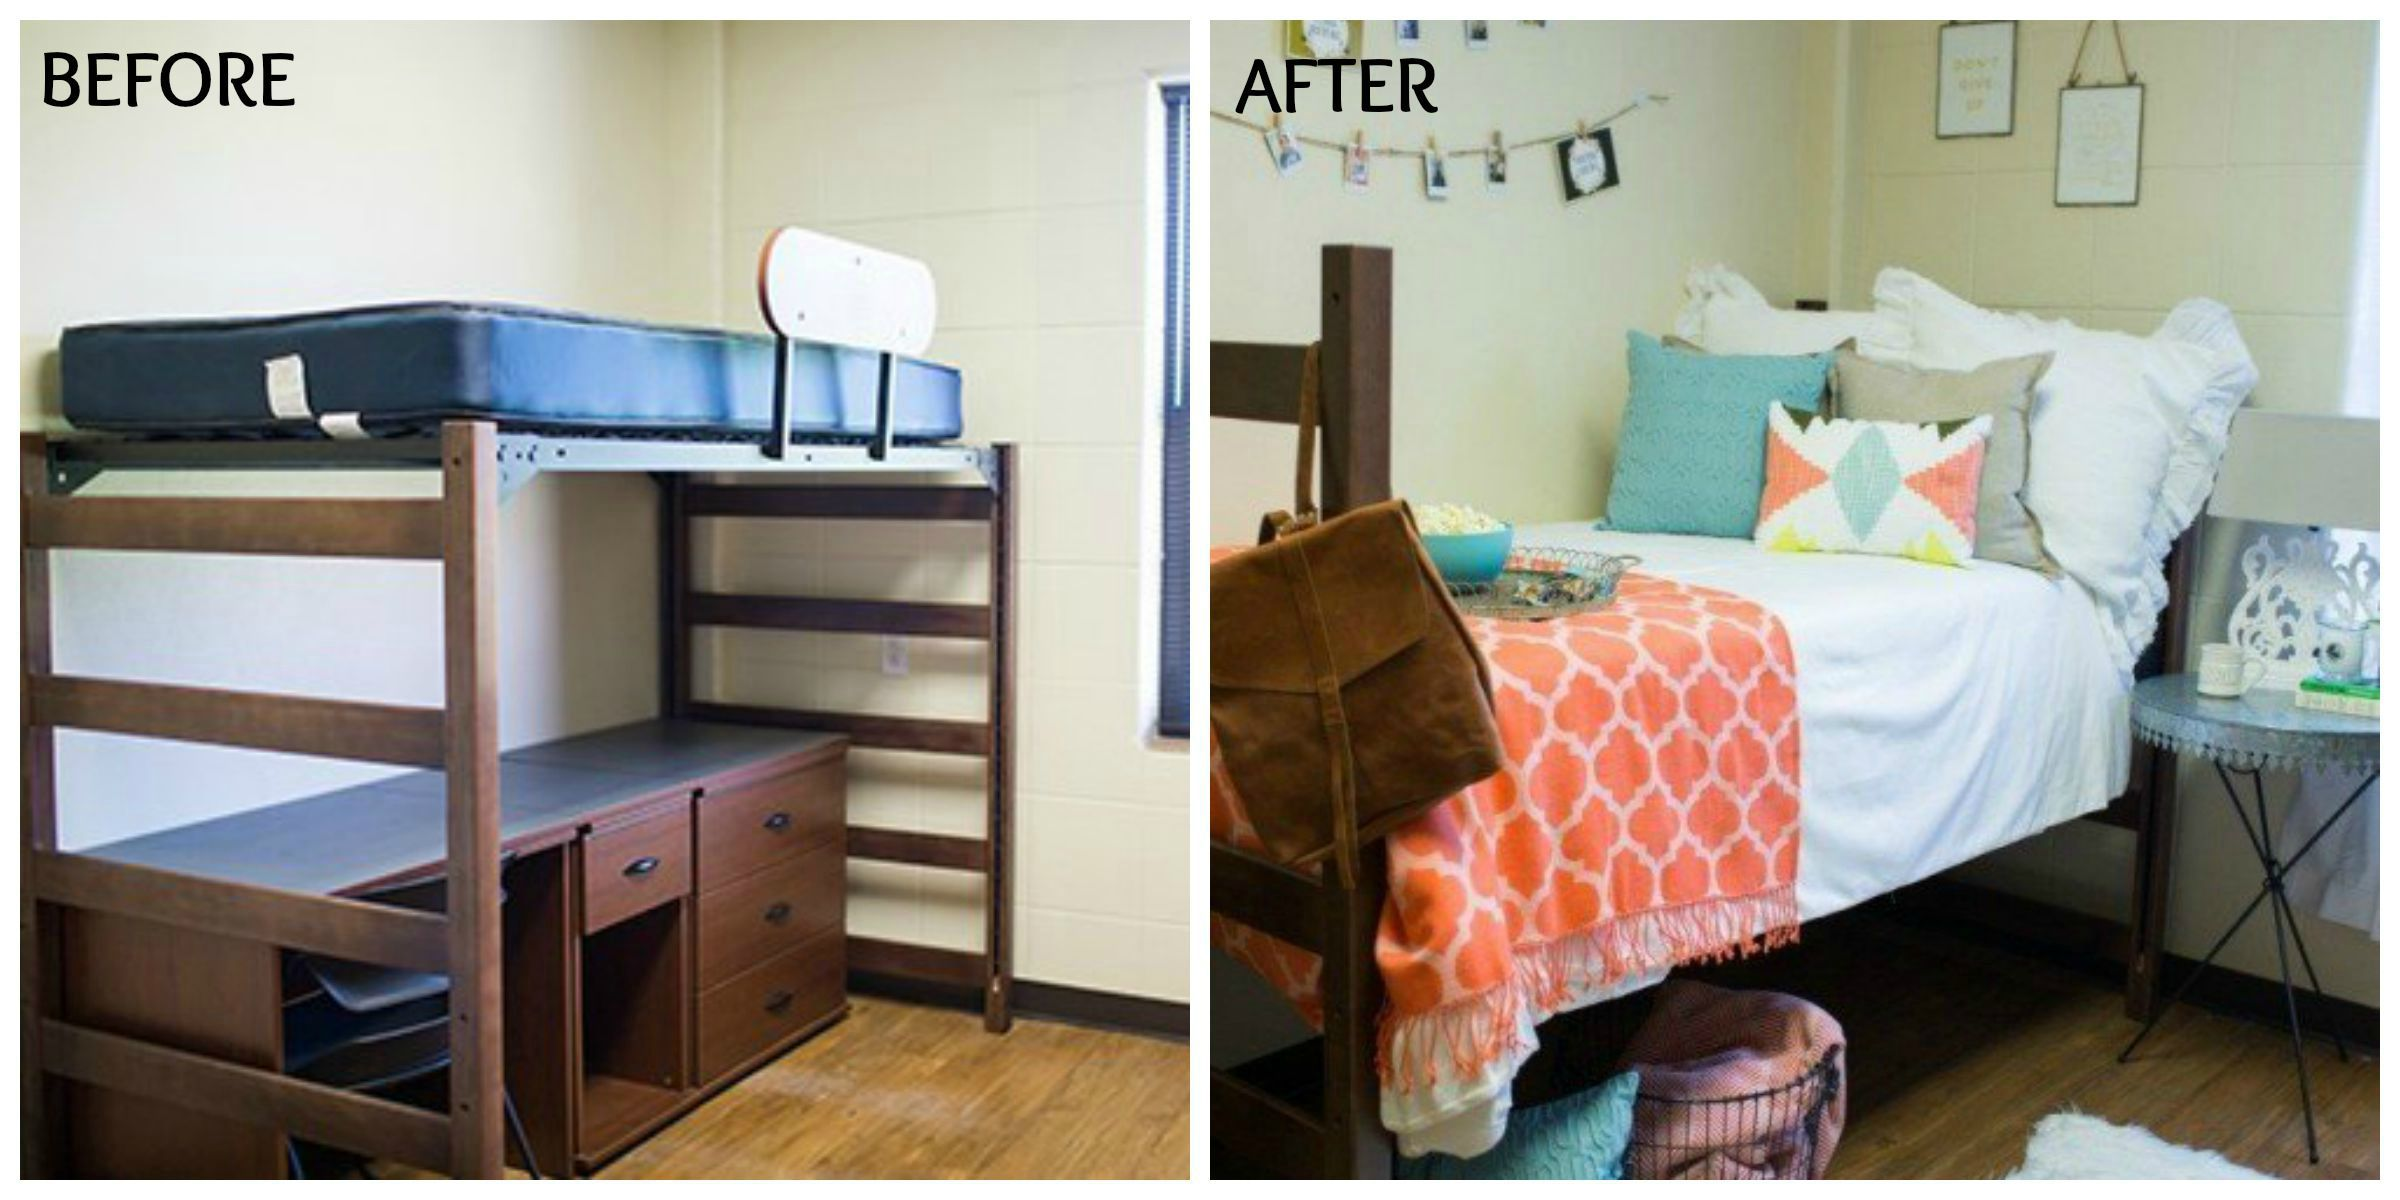 11-before-and-after-dorm-pics-11.jpg